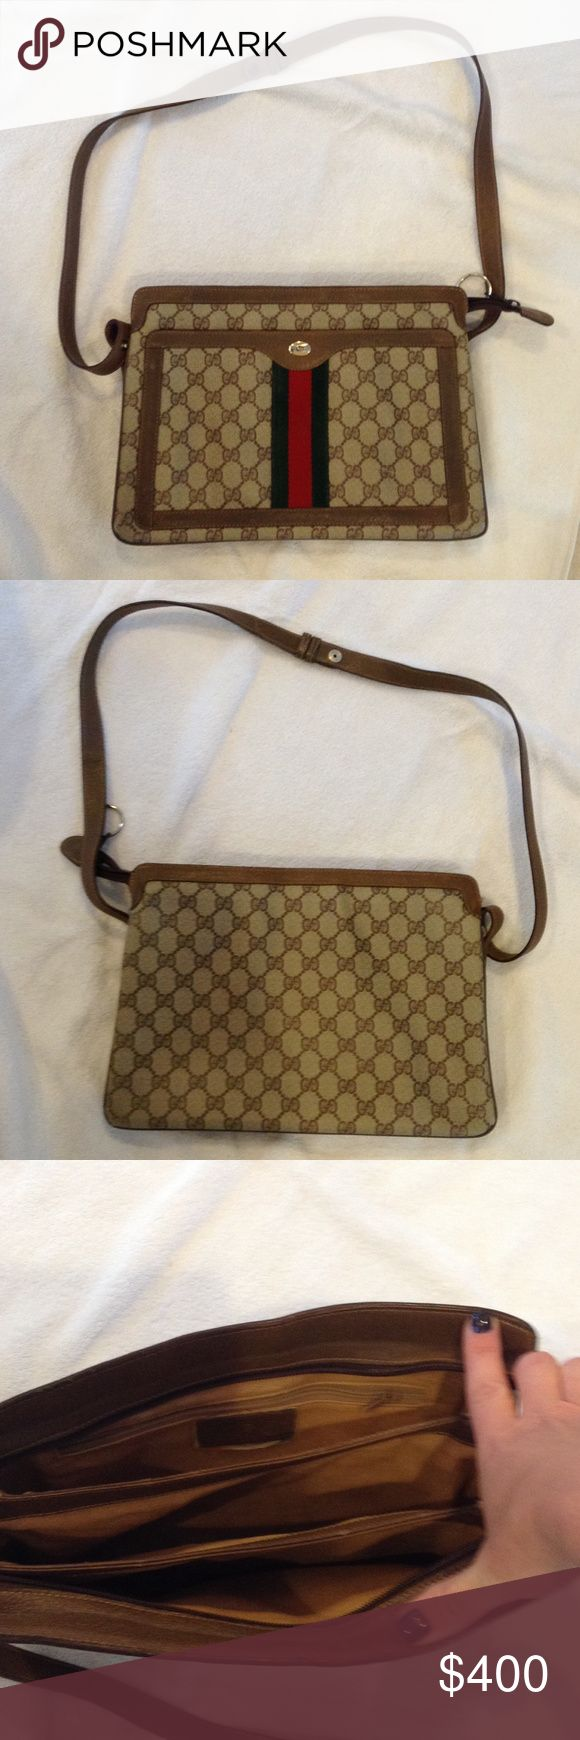 VINTAGE AUTHENTIC GUCCI MESSENGER BAG AUTHENTIC GUCCI. DATE CODE SEEN IN PICTURE 4. Gently worn. NO STAINS OR TEARS!!  Amazing bag. Leather and canvas. Strap approx 18 inches Gucci Bags Crossbody Bags